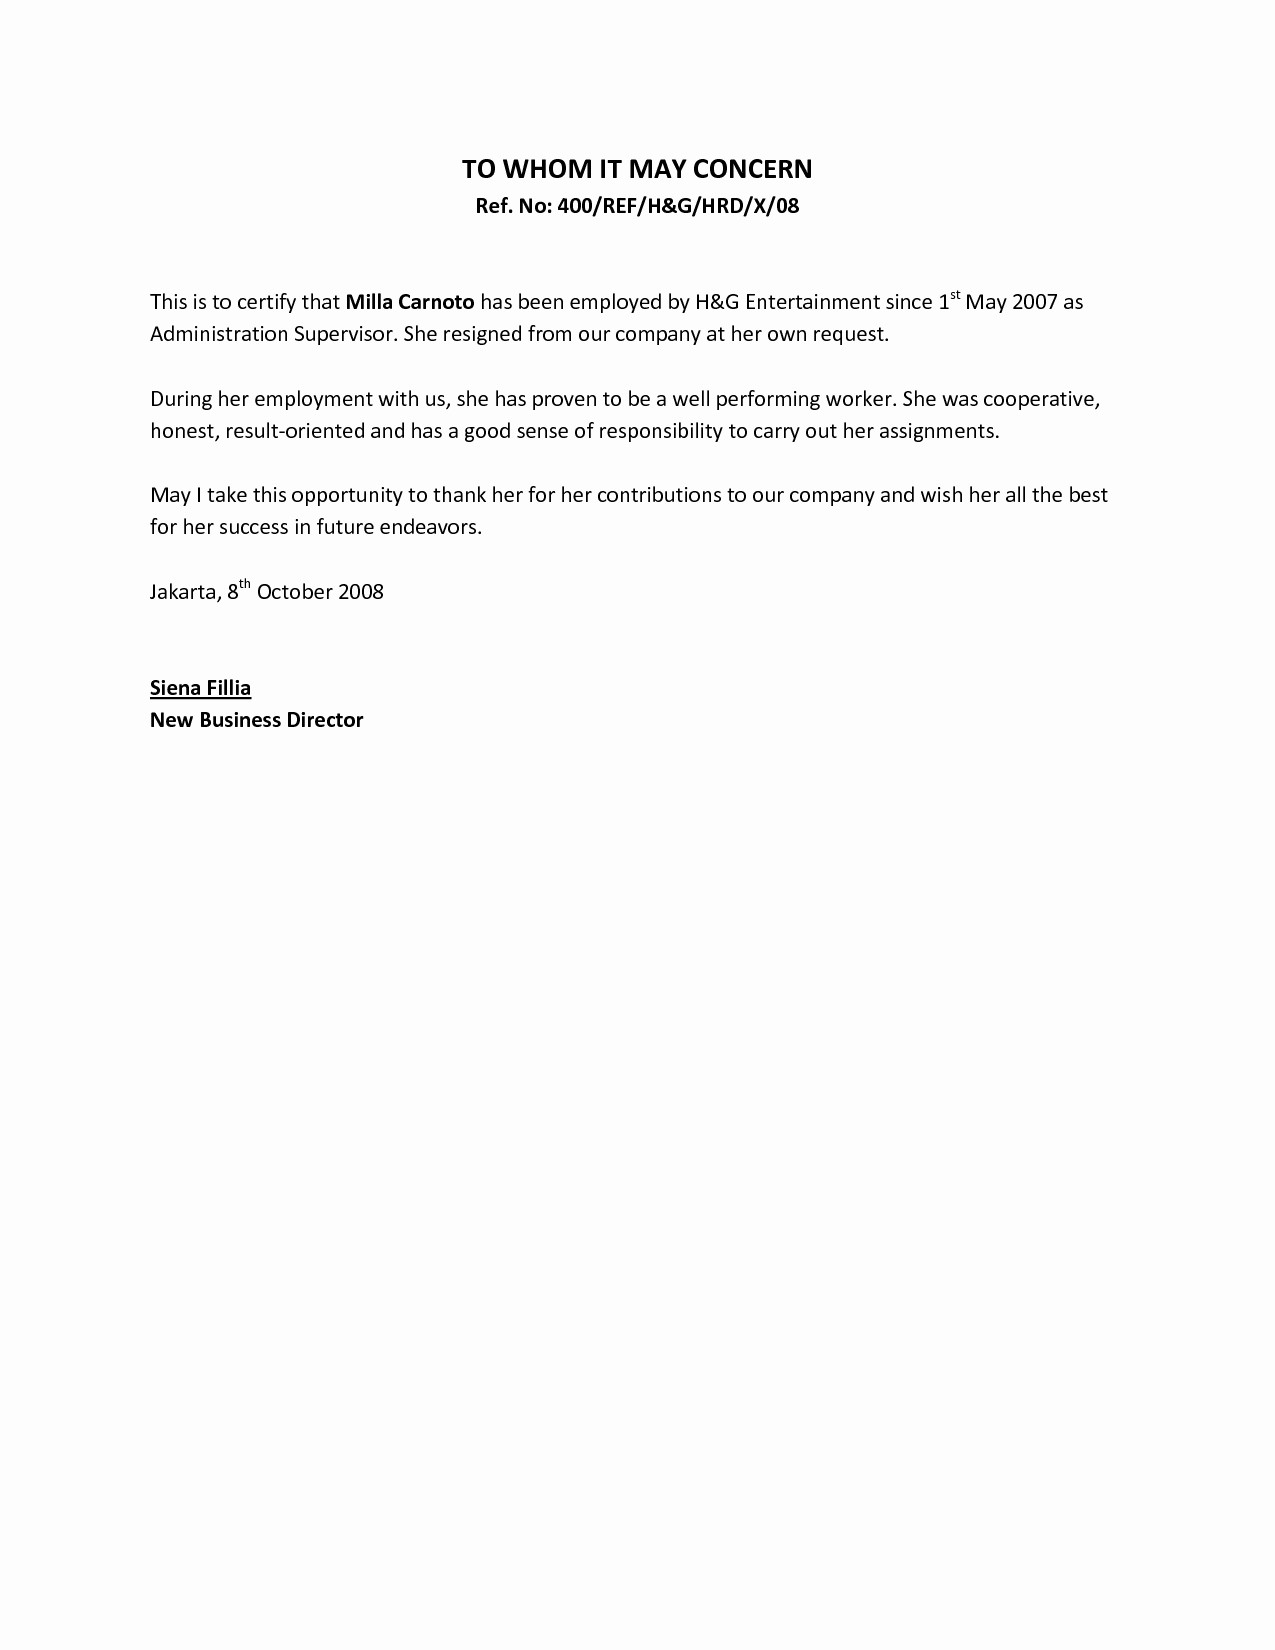 Reference Letter Template From Employer Unique Job Letter From Employer